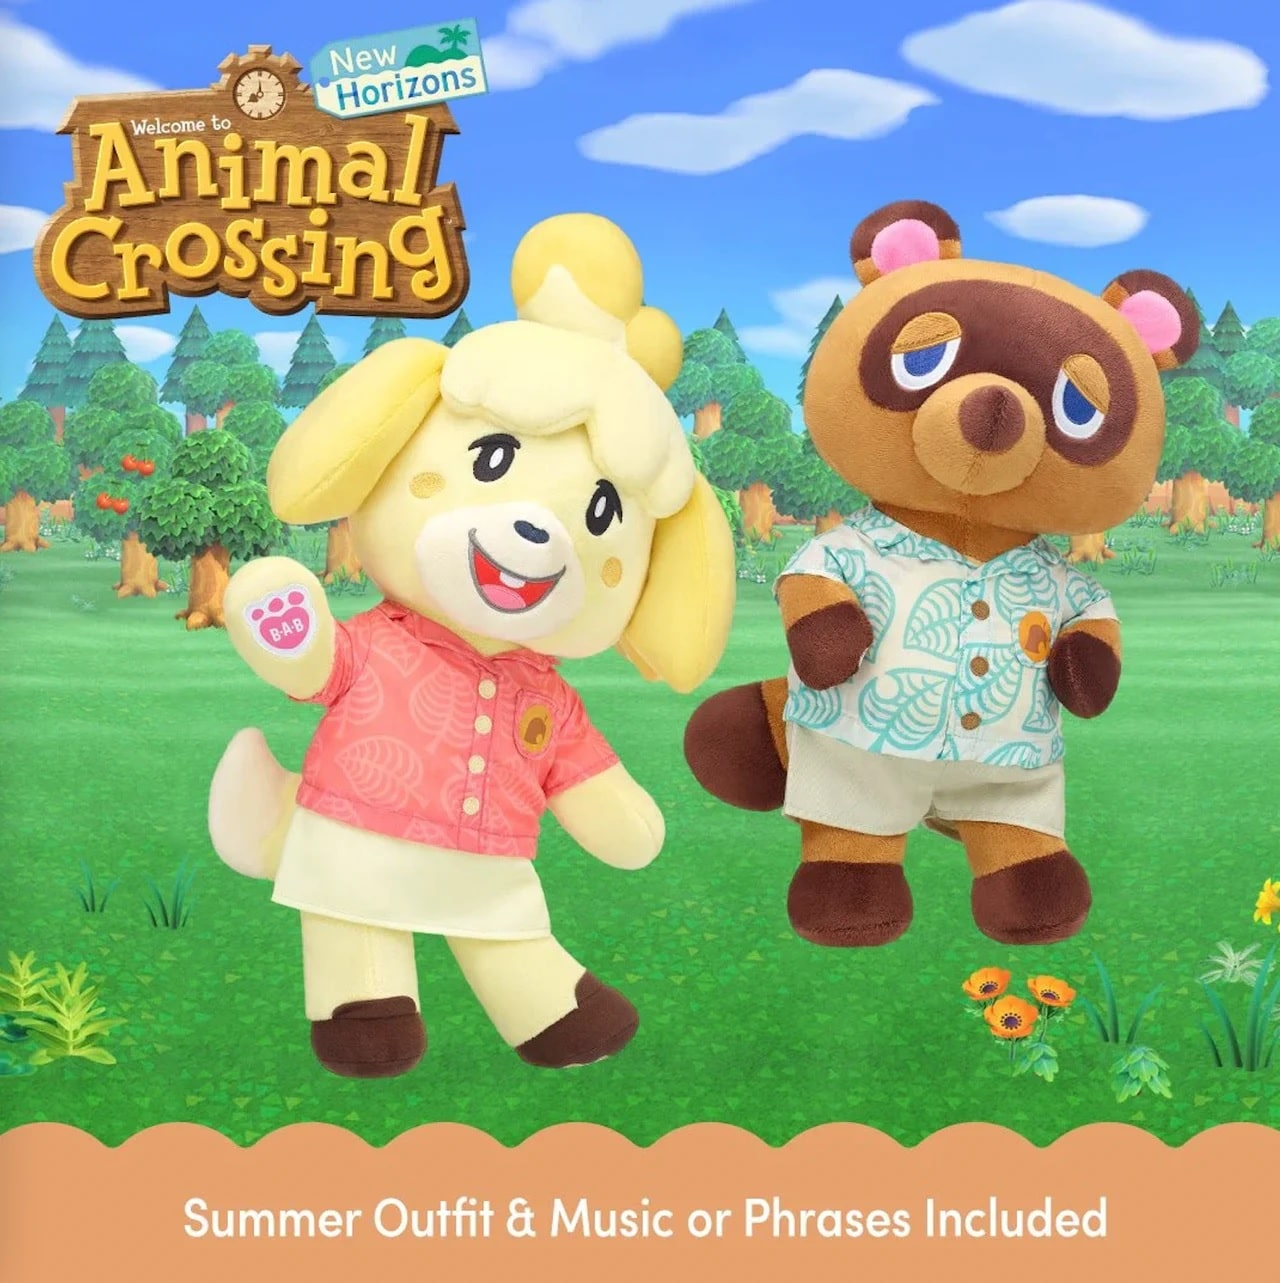 Animal Crossing: New Horizons Build-A-Bear collection includes Tom Nook and Isabelle 12